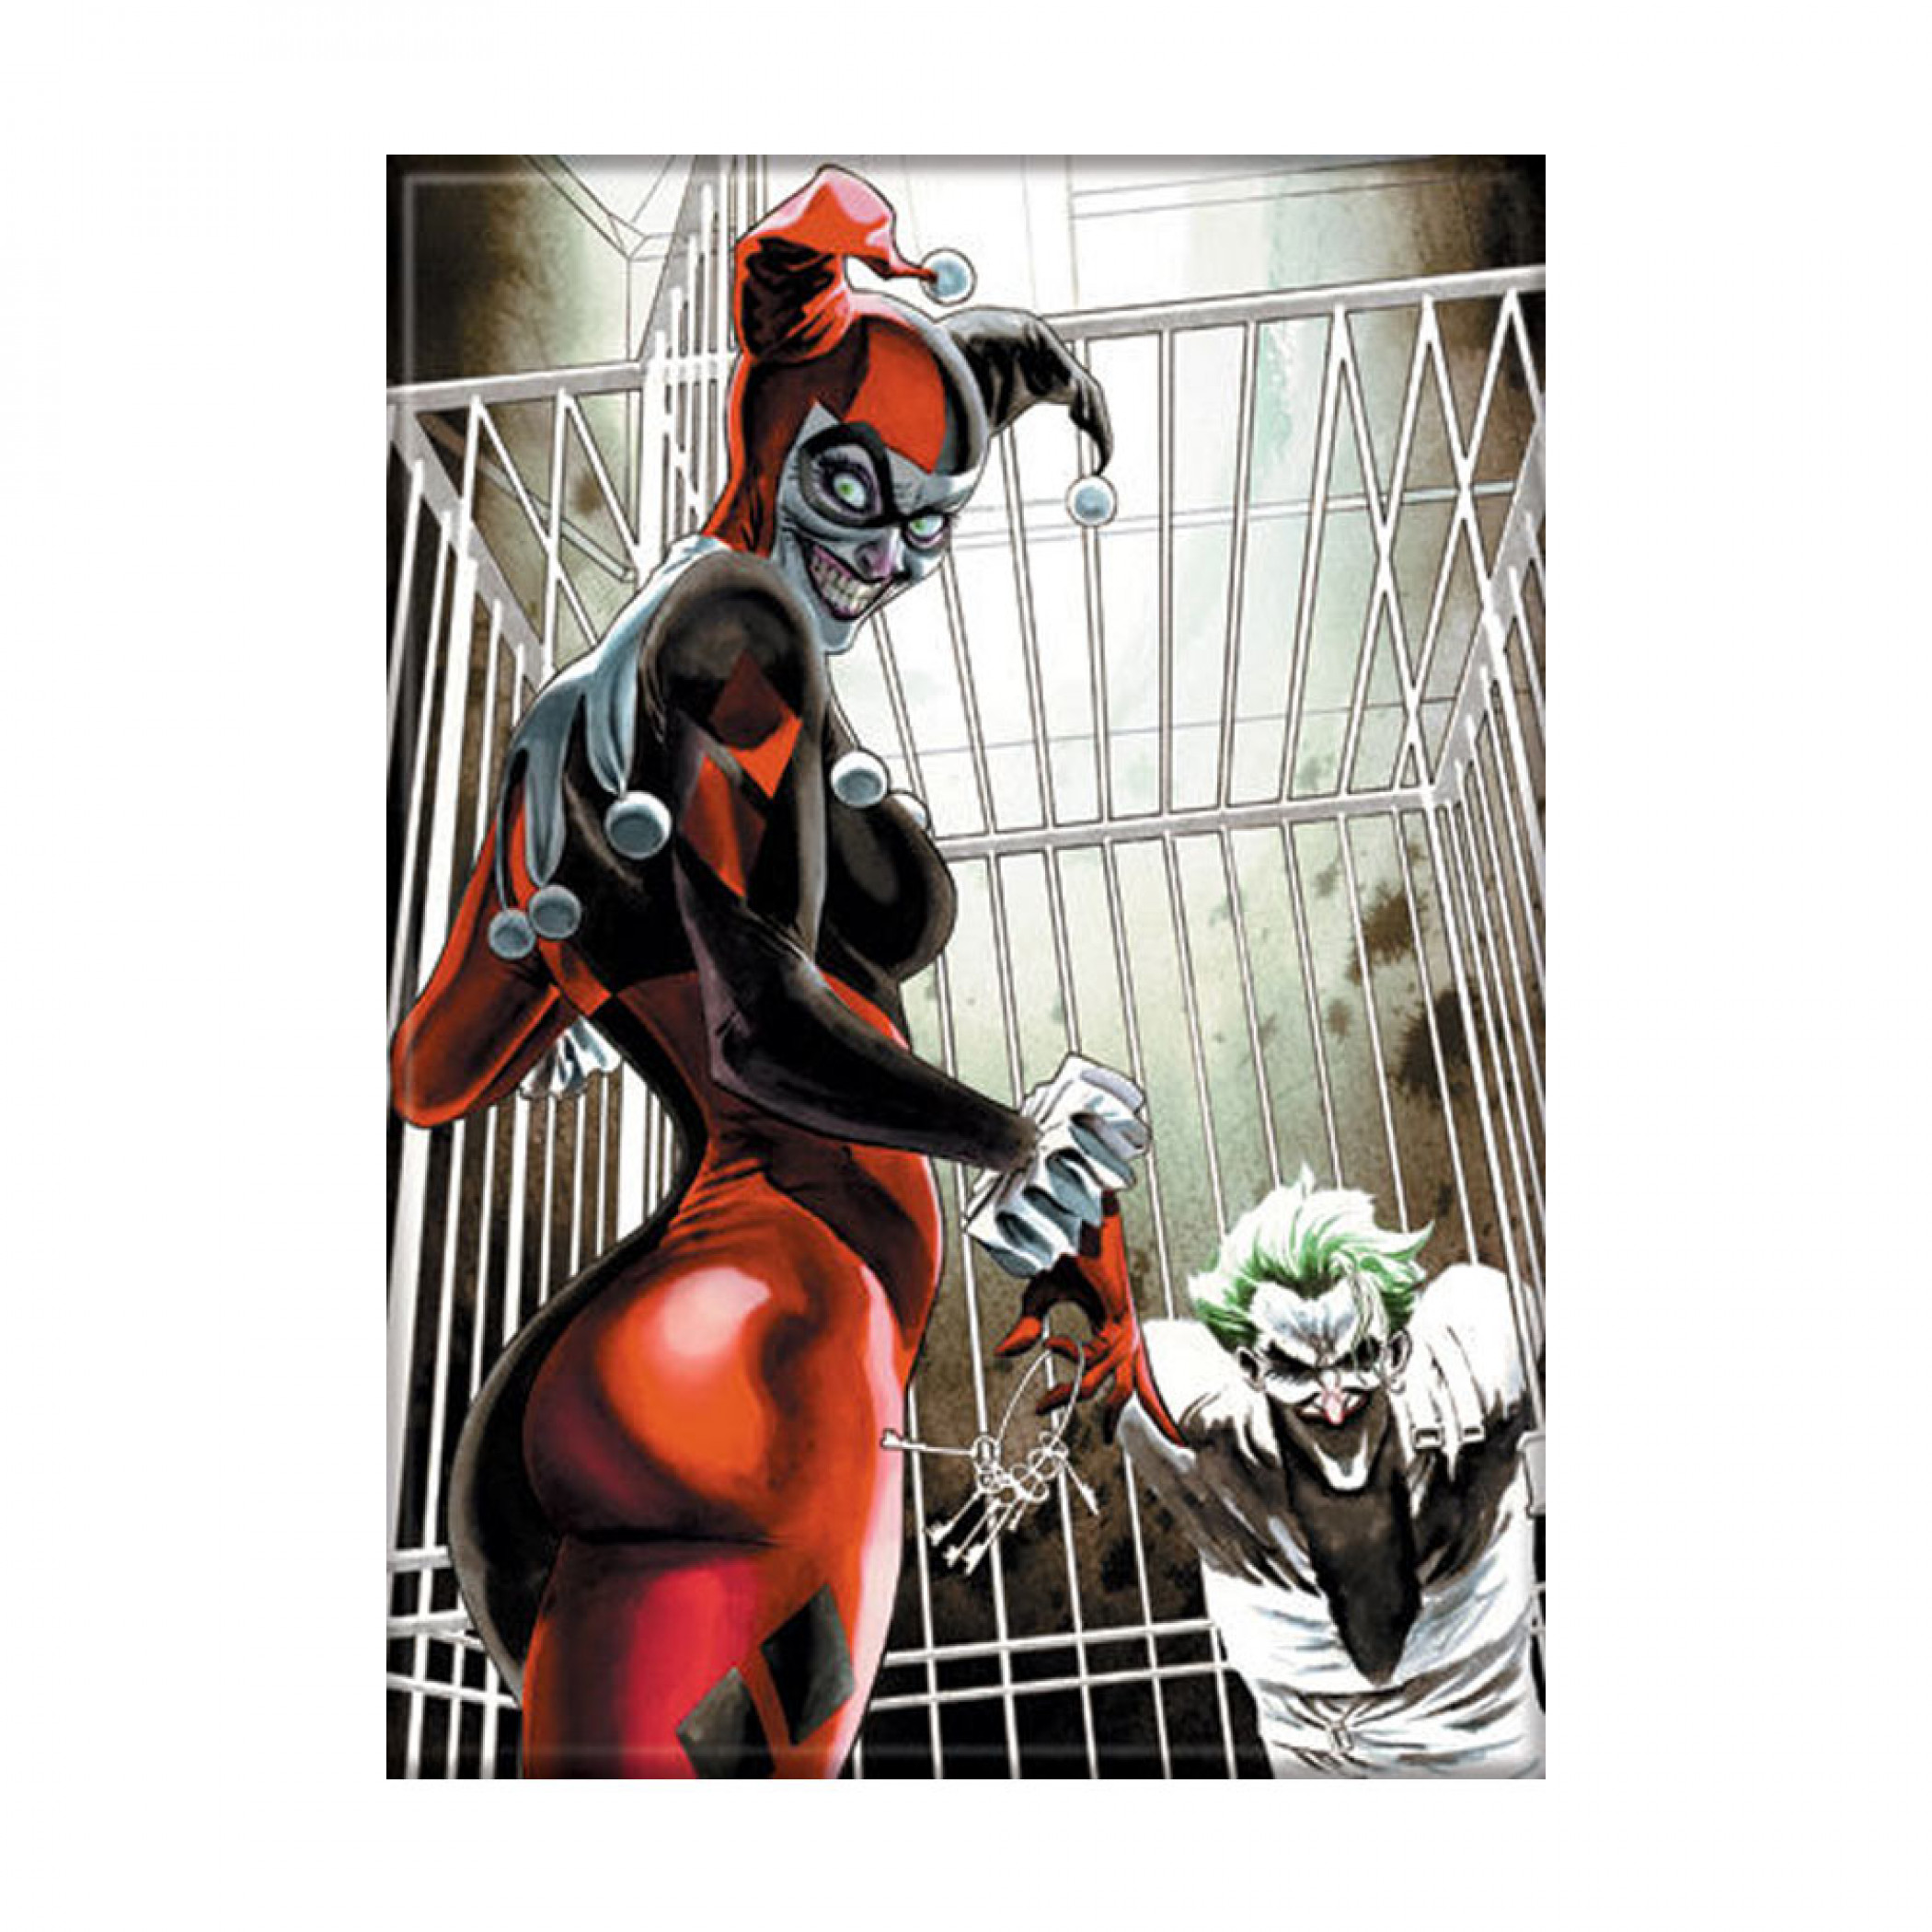 Harley with Joker in Cage Photo Magnet